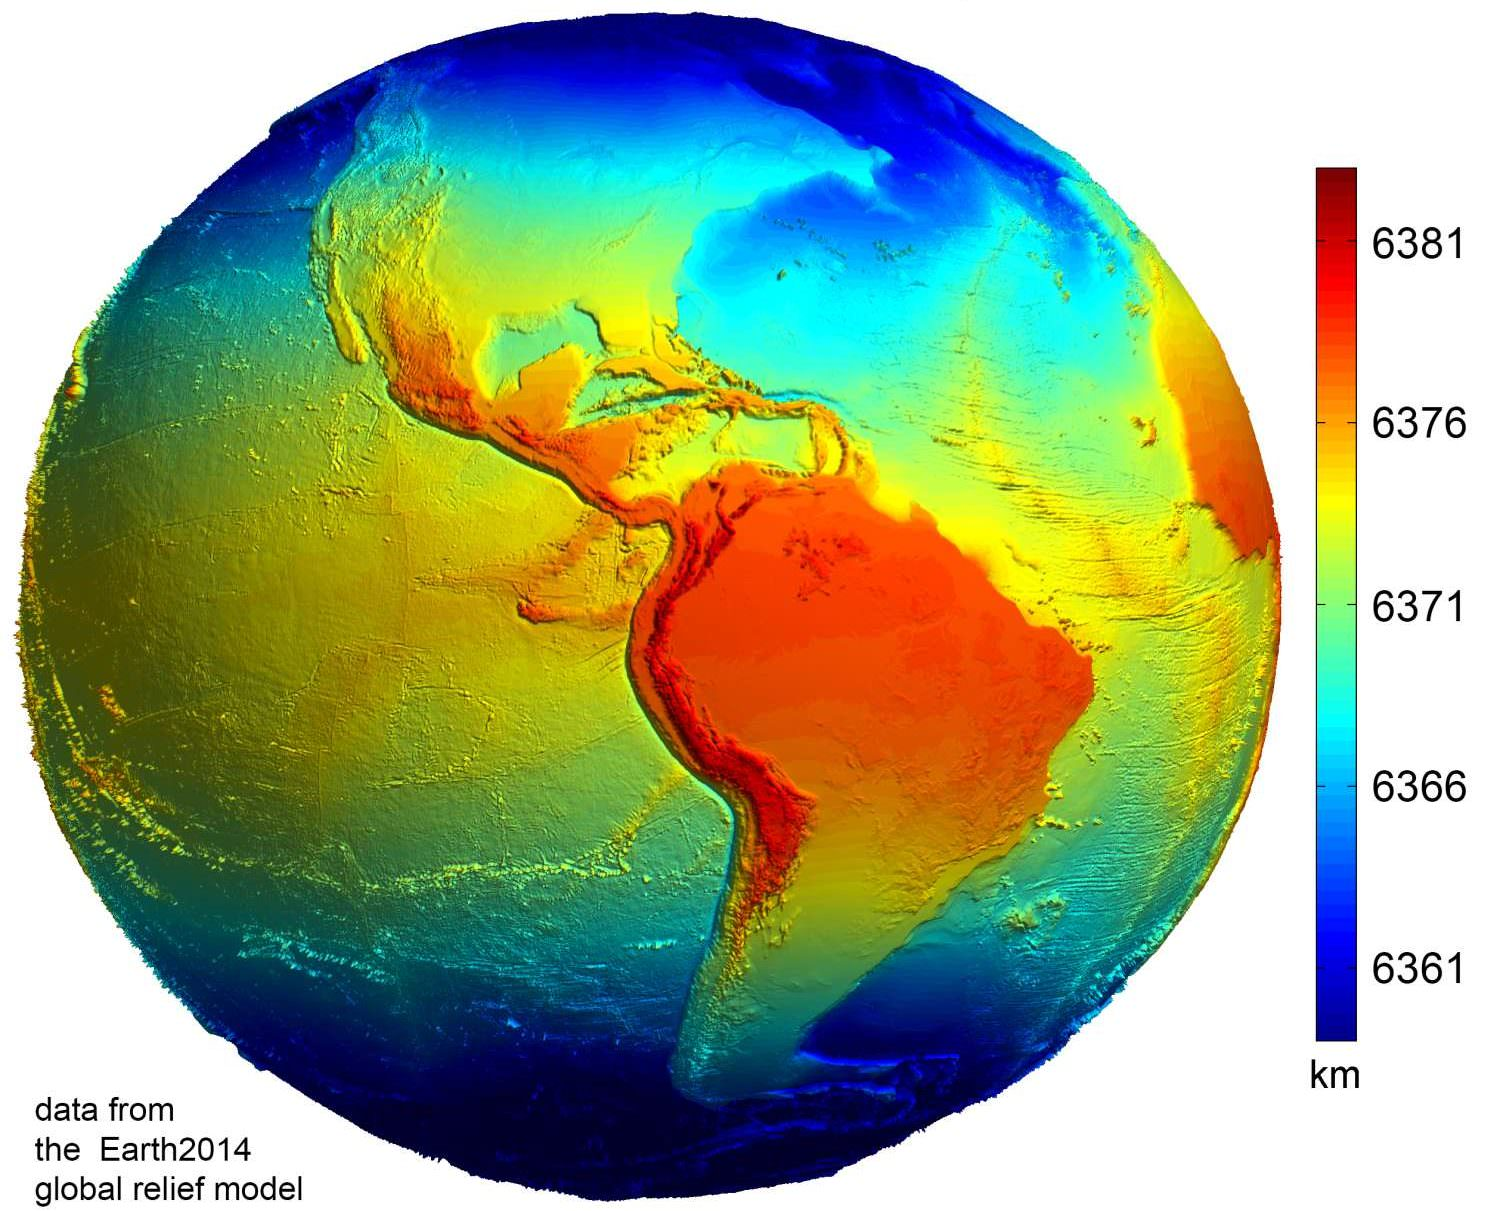 What Is The Diameter Of Earth